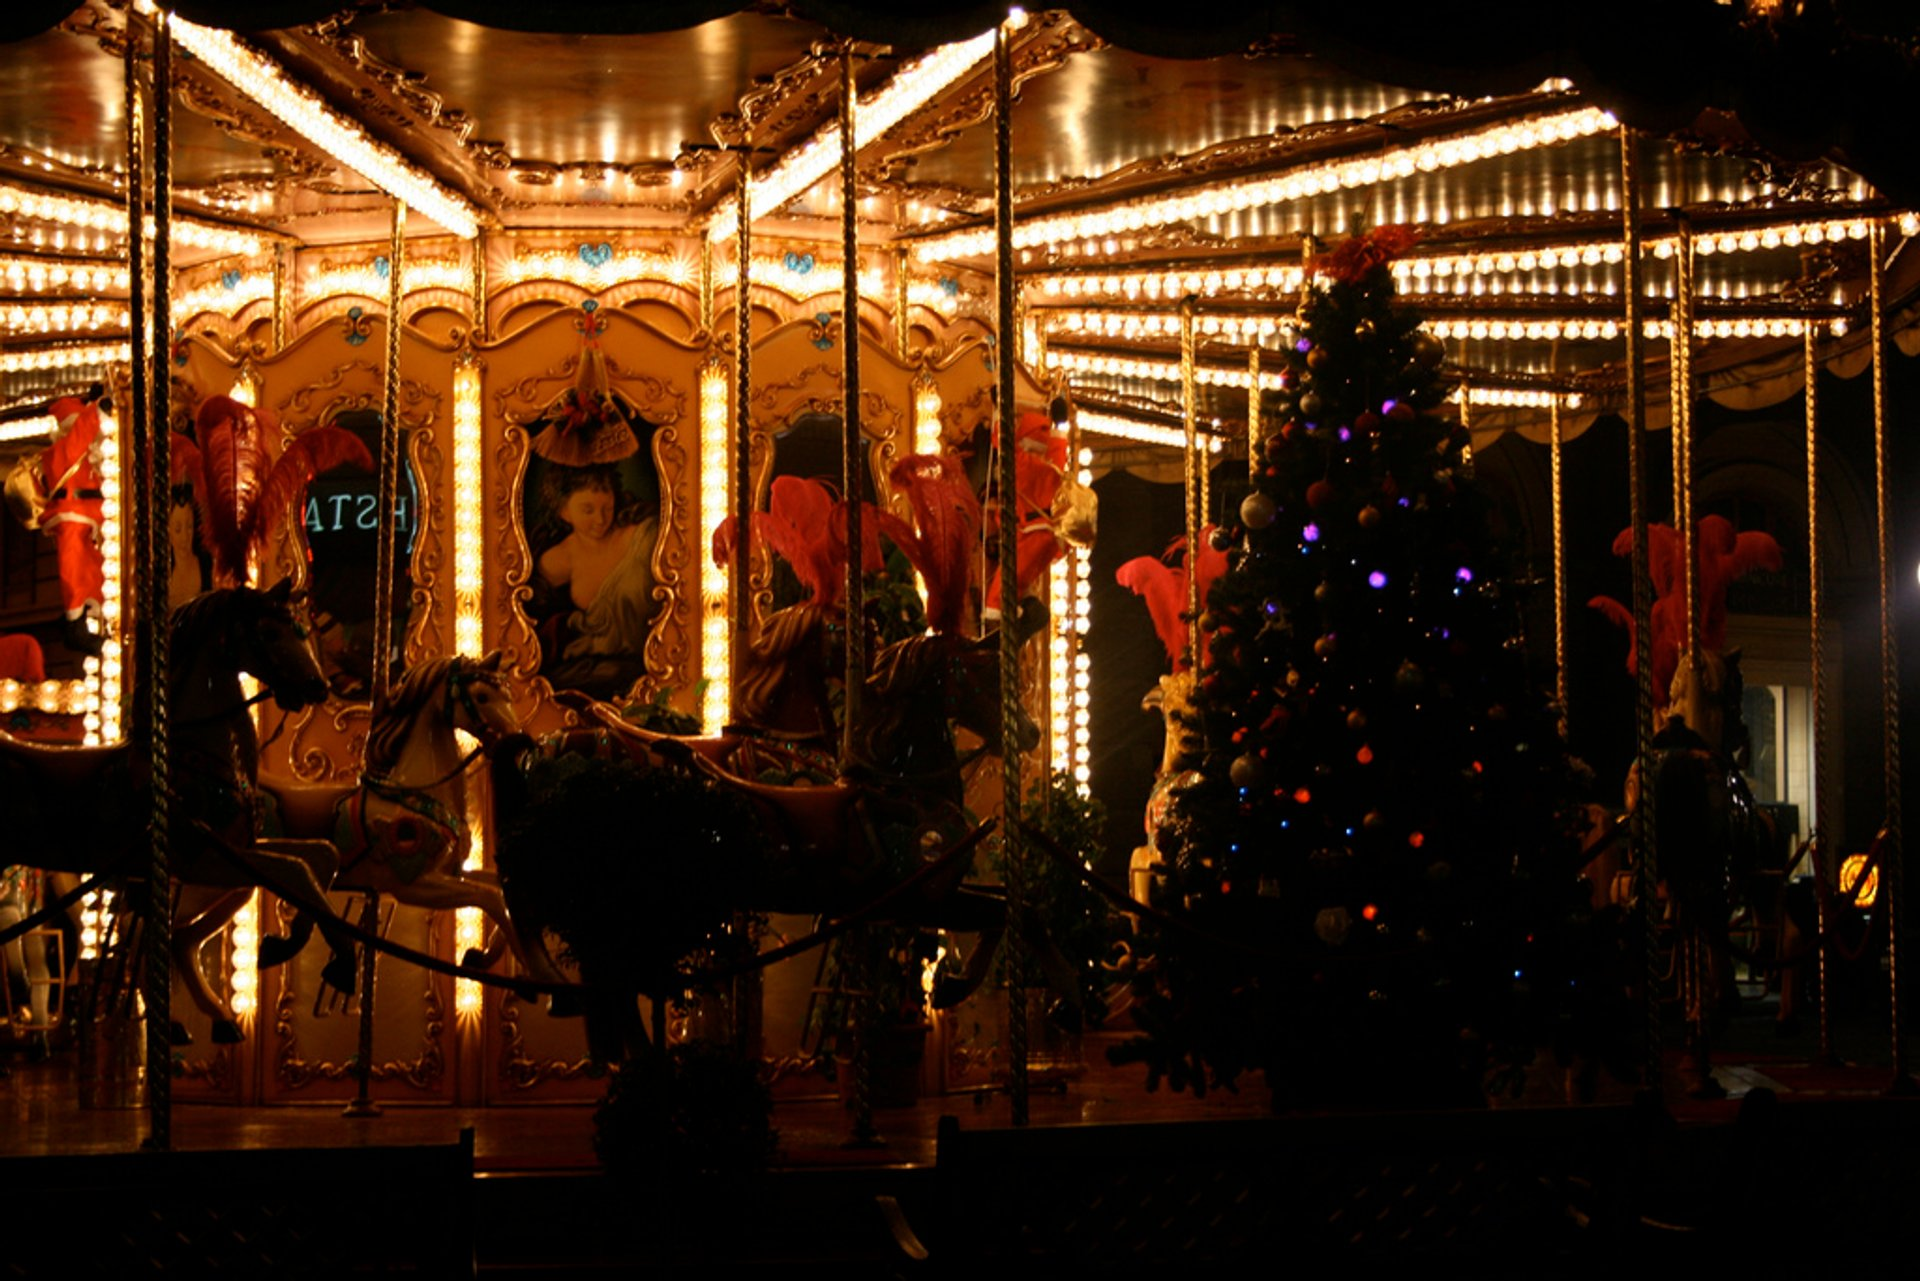 Piazza Repubblica Carousel at Christmas time, Florence, Italy 2020